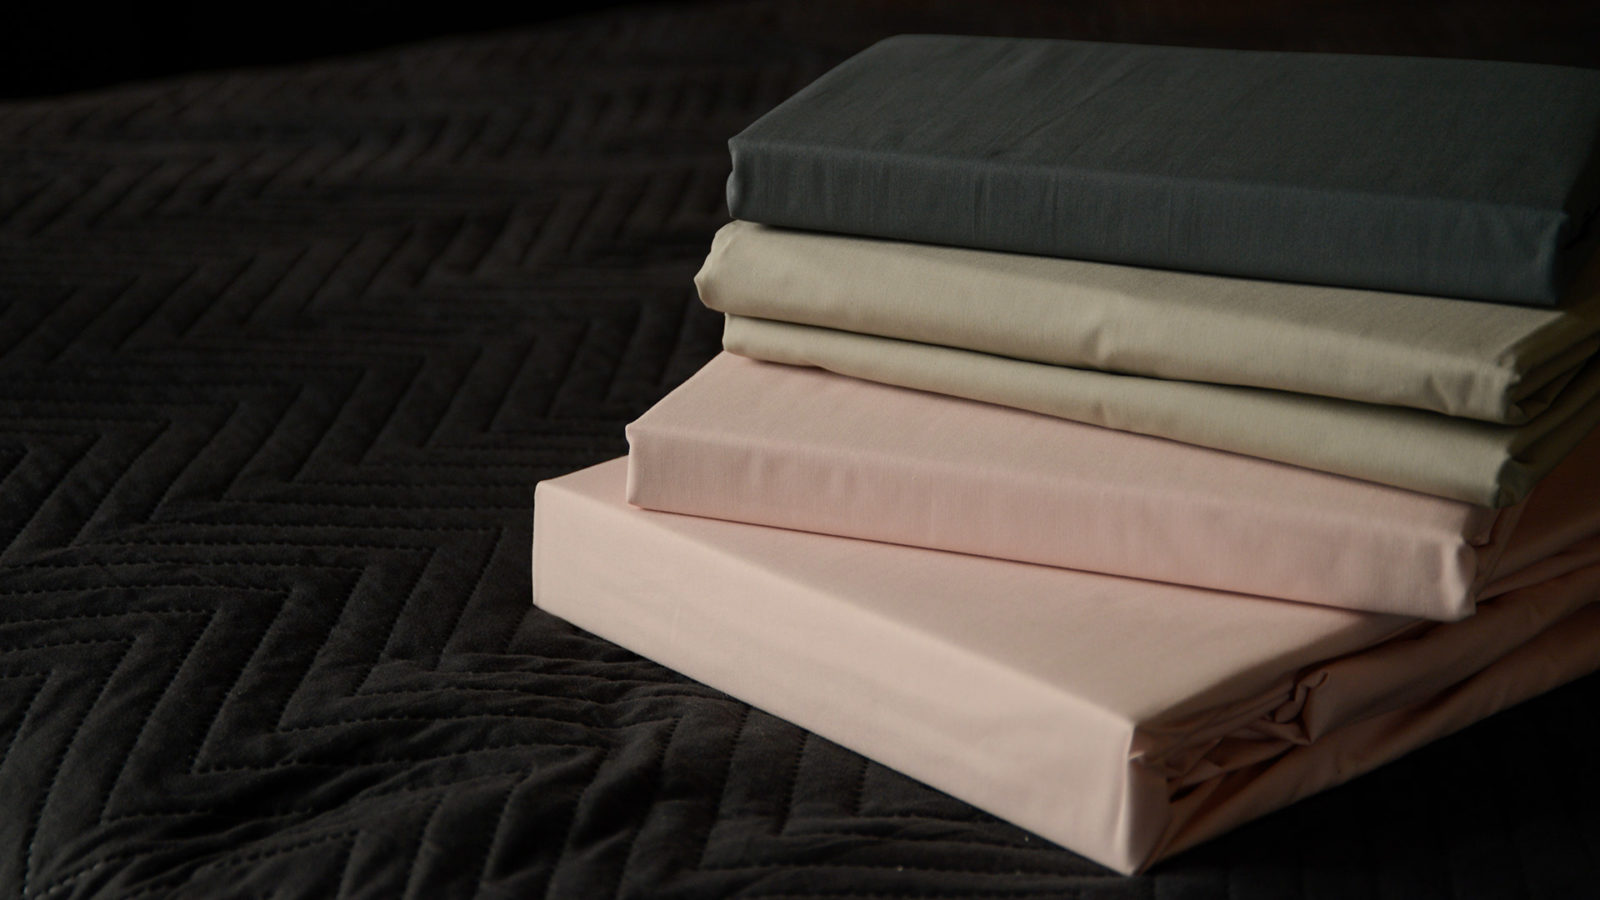 easy care cotton percale sheets and pillowcases